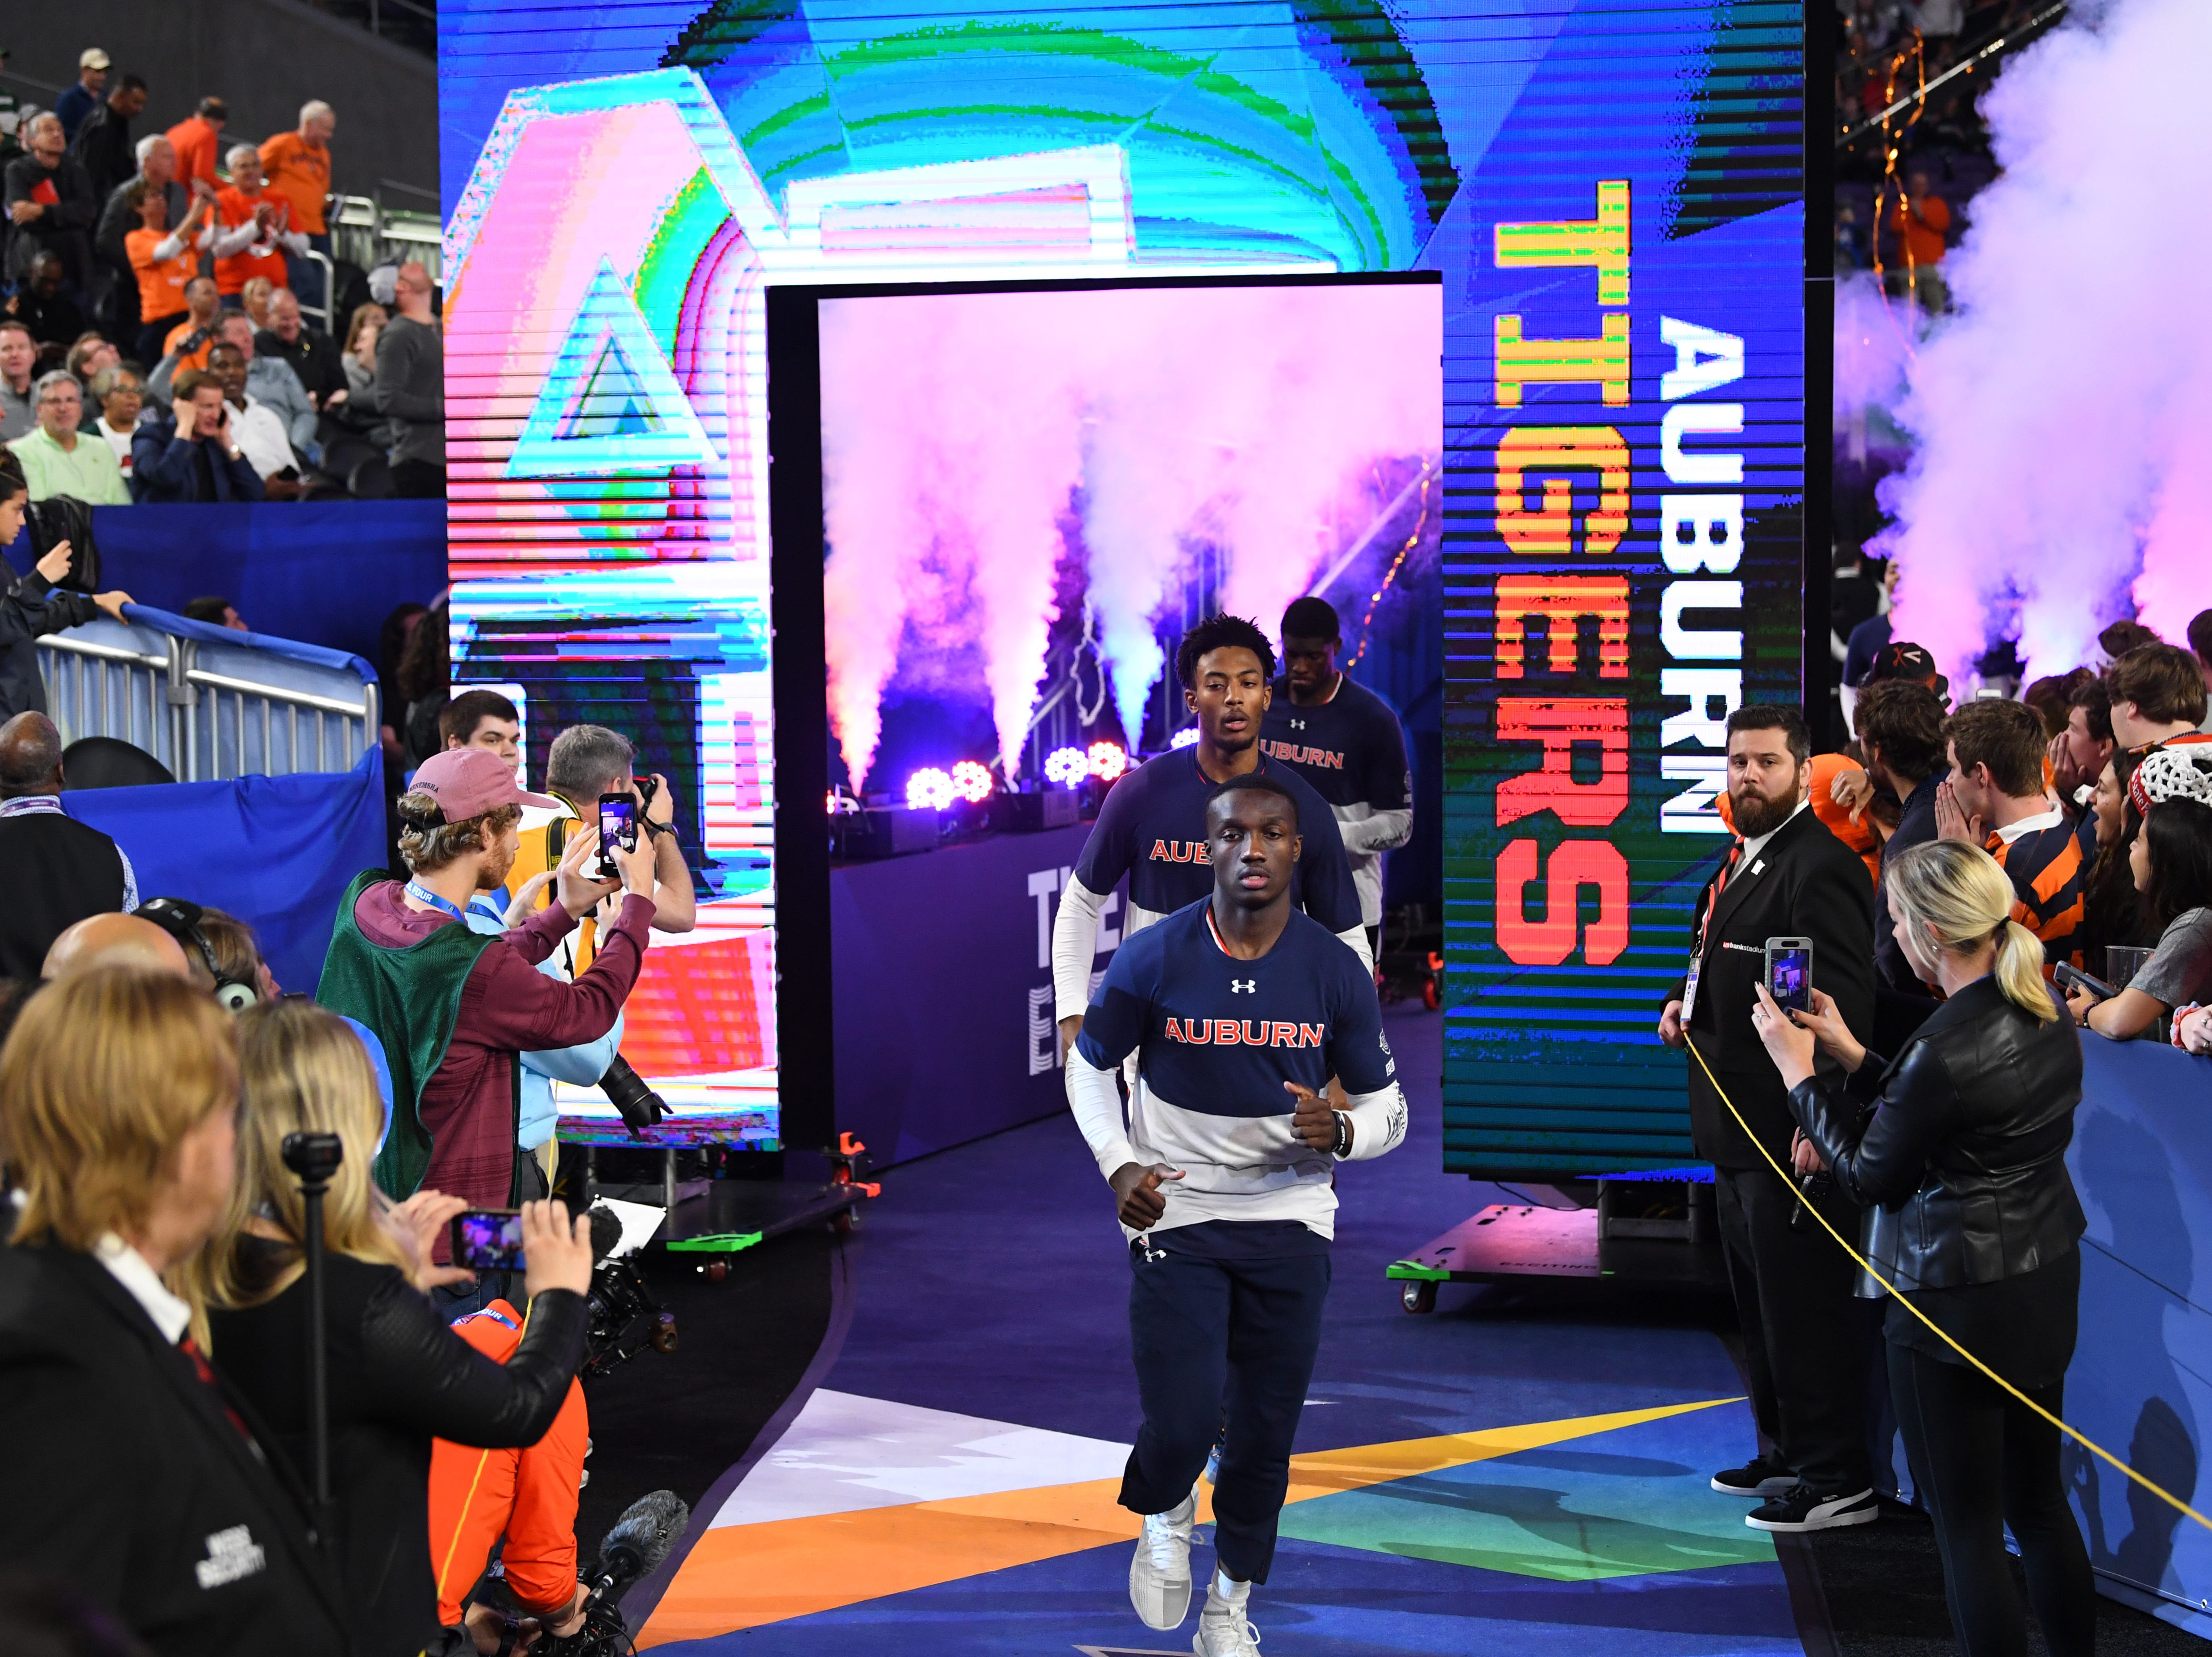 Auburn Tigers guard Jared Harper takes the floor prior to facing the Virginia Cavaliers.